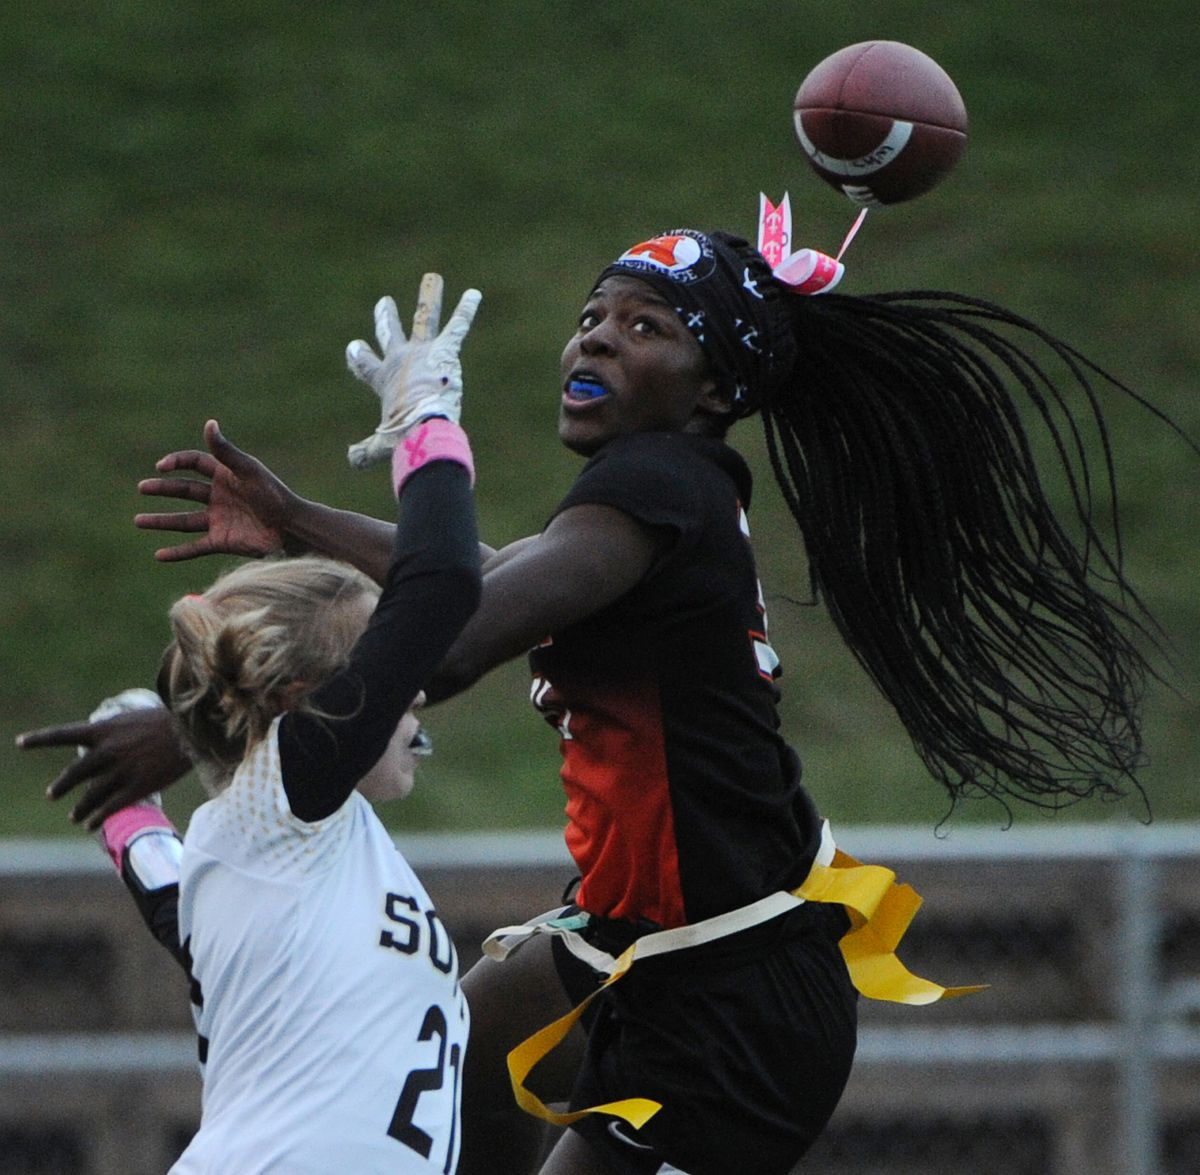 South High defender Maris Soland and West High receiver Nyeniea John battle for a ball during the Eagles' 20-12 flag football semifinal victory at South High on Thursday. (Bill Roth / ADN)